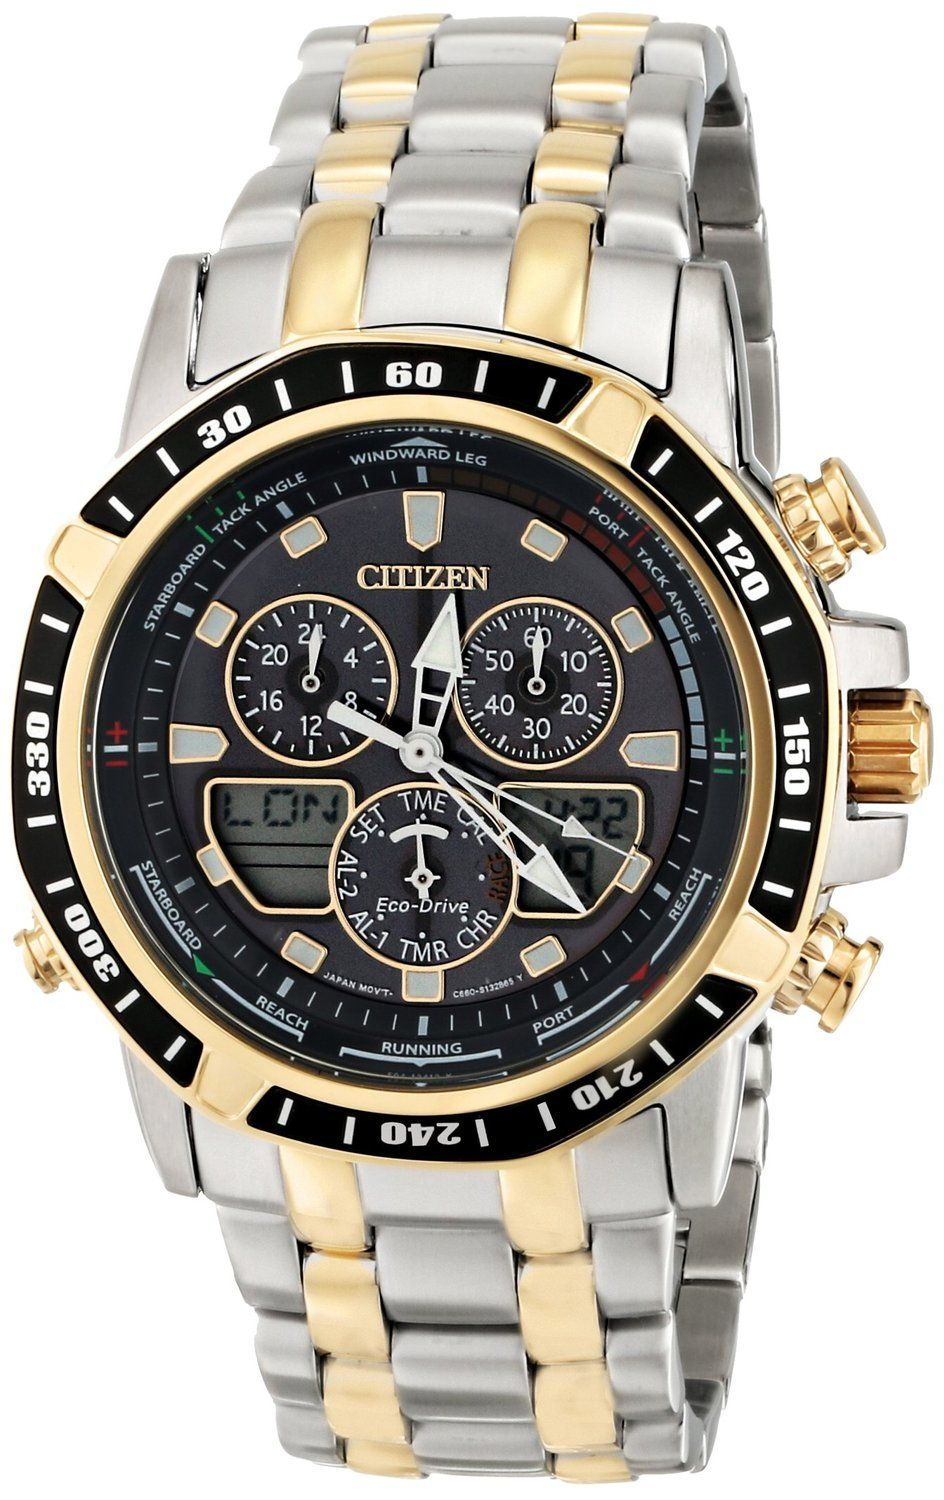 men watches citizen men s jr4054 56e sailhawk two tone stainless men watches citizen men s jr4054 56e sailhawk two tone stainless steel watch